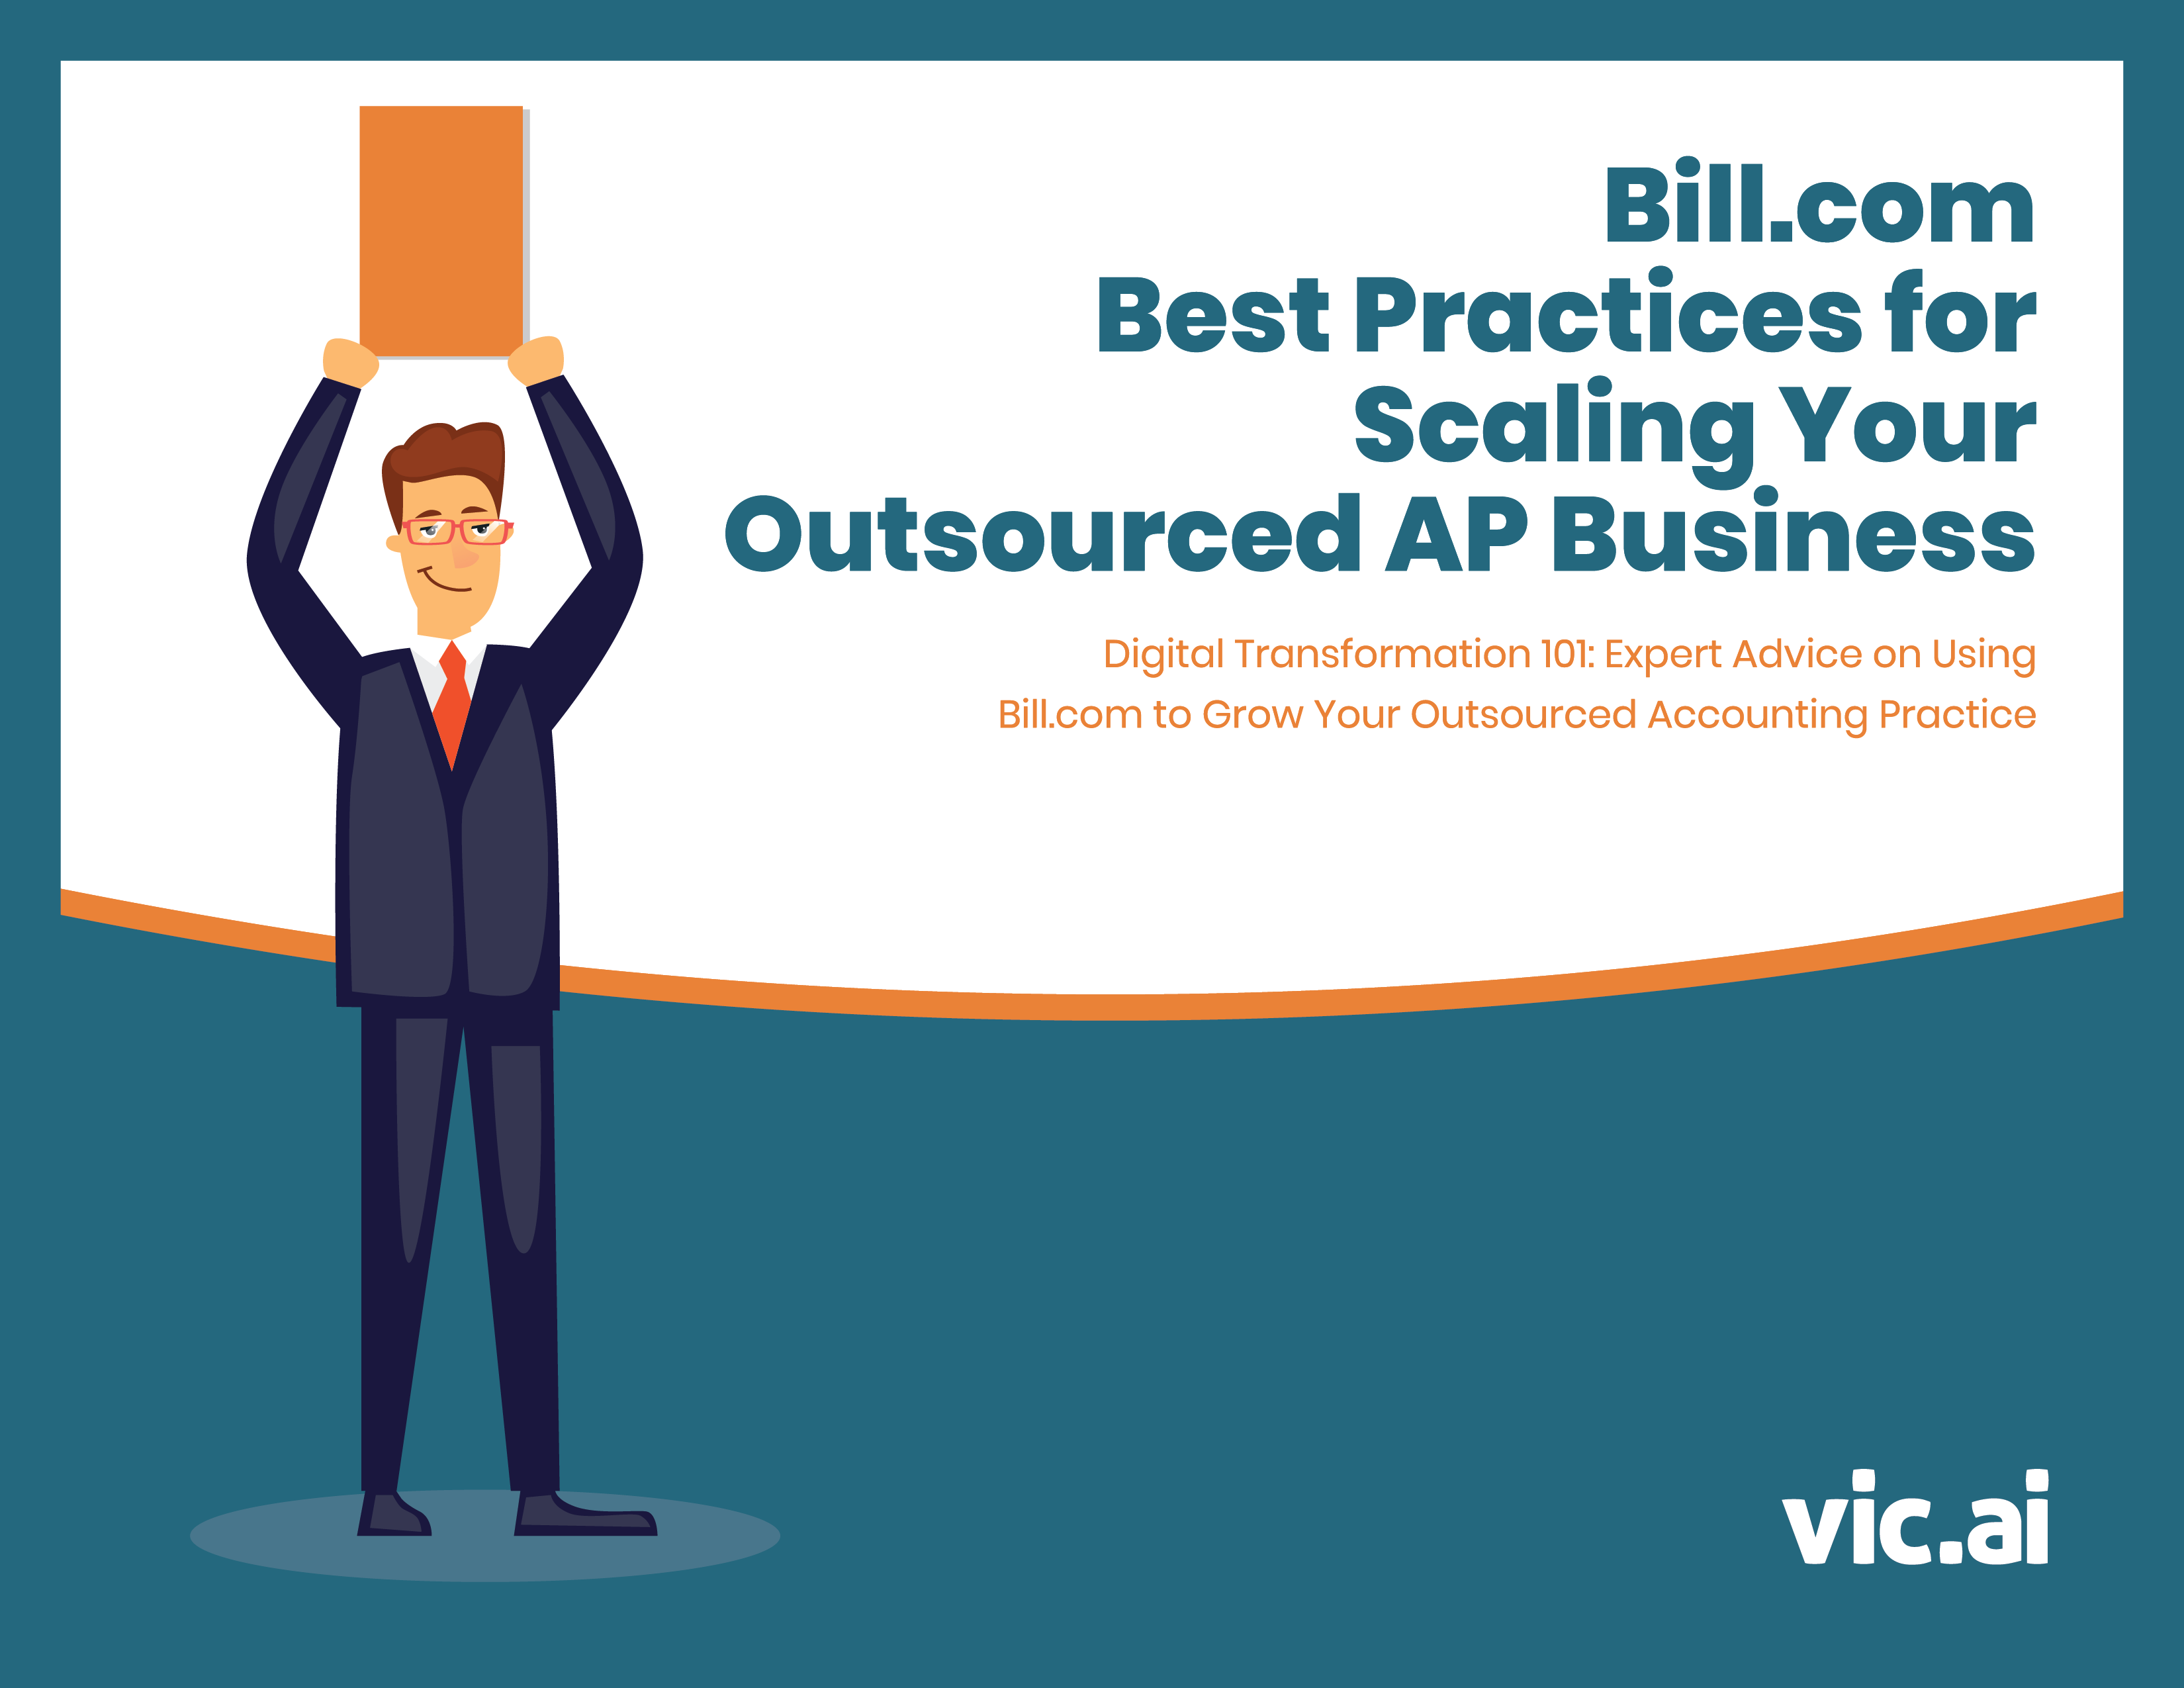 Bill.com Best Practices for Scaling Your Outsourced AP Business [Download the Free eBook]